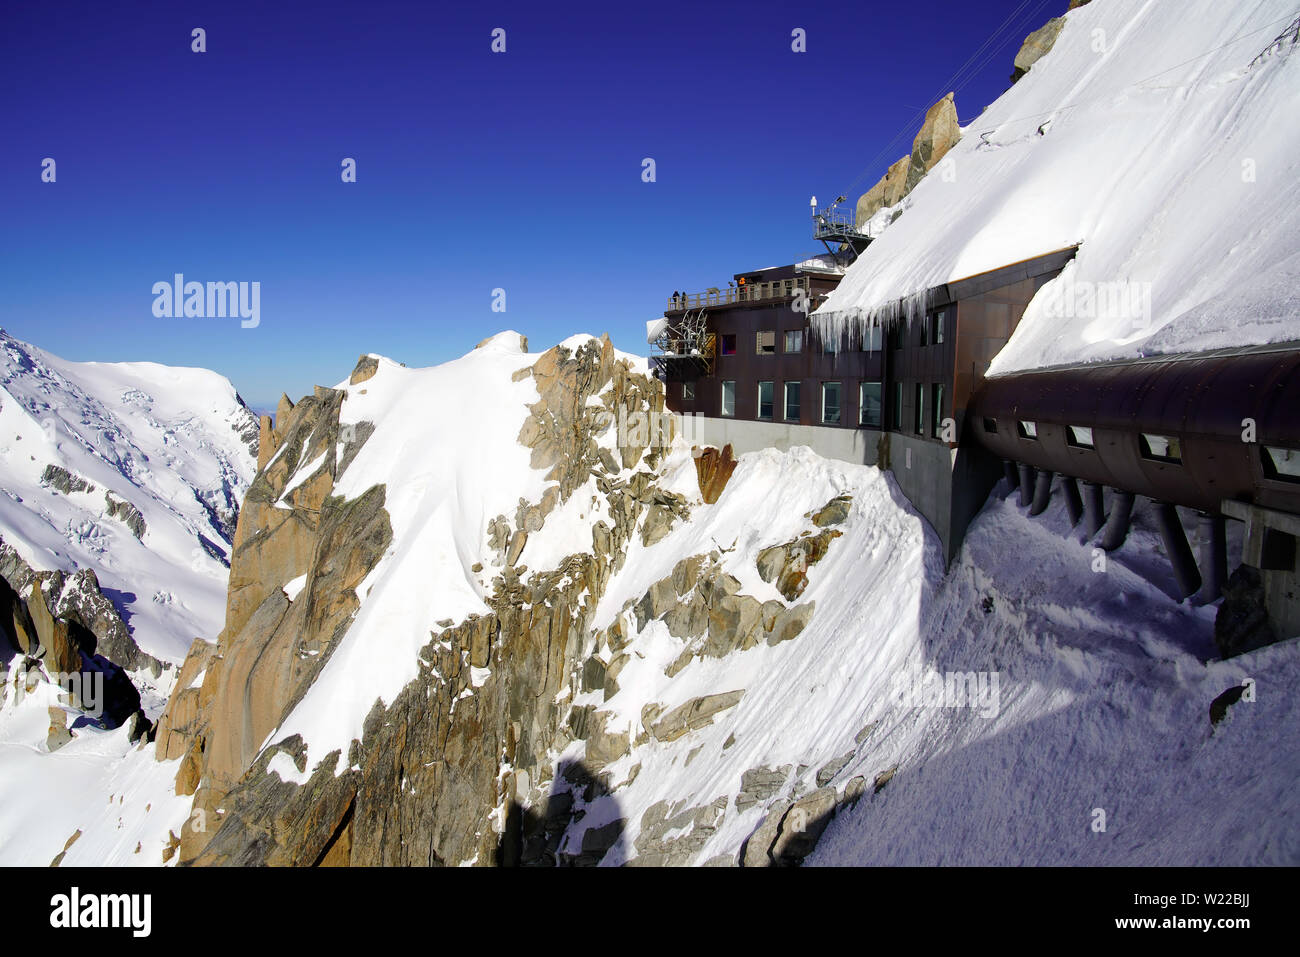 View of Aiguille Du Midi cable car station. Mont Blanc massif in the French Alps above Chamonix. - Stock Image